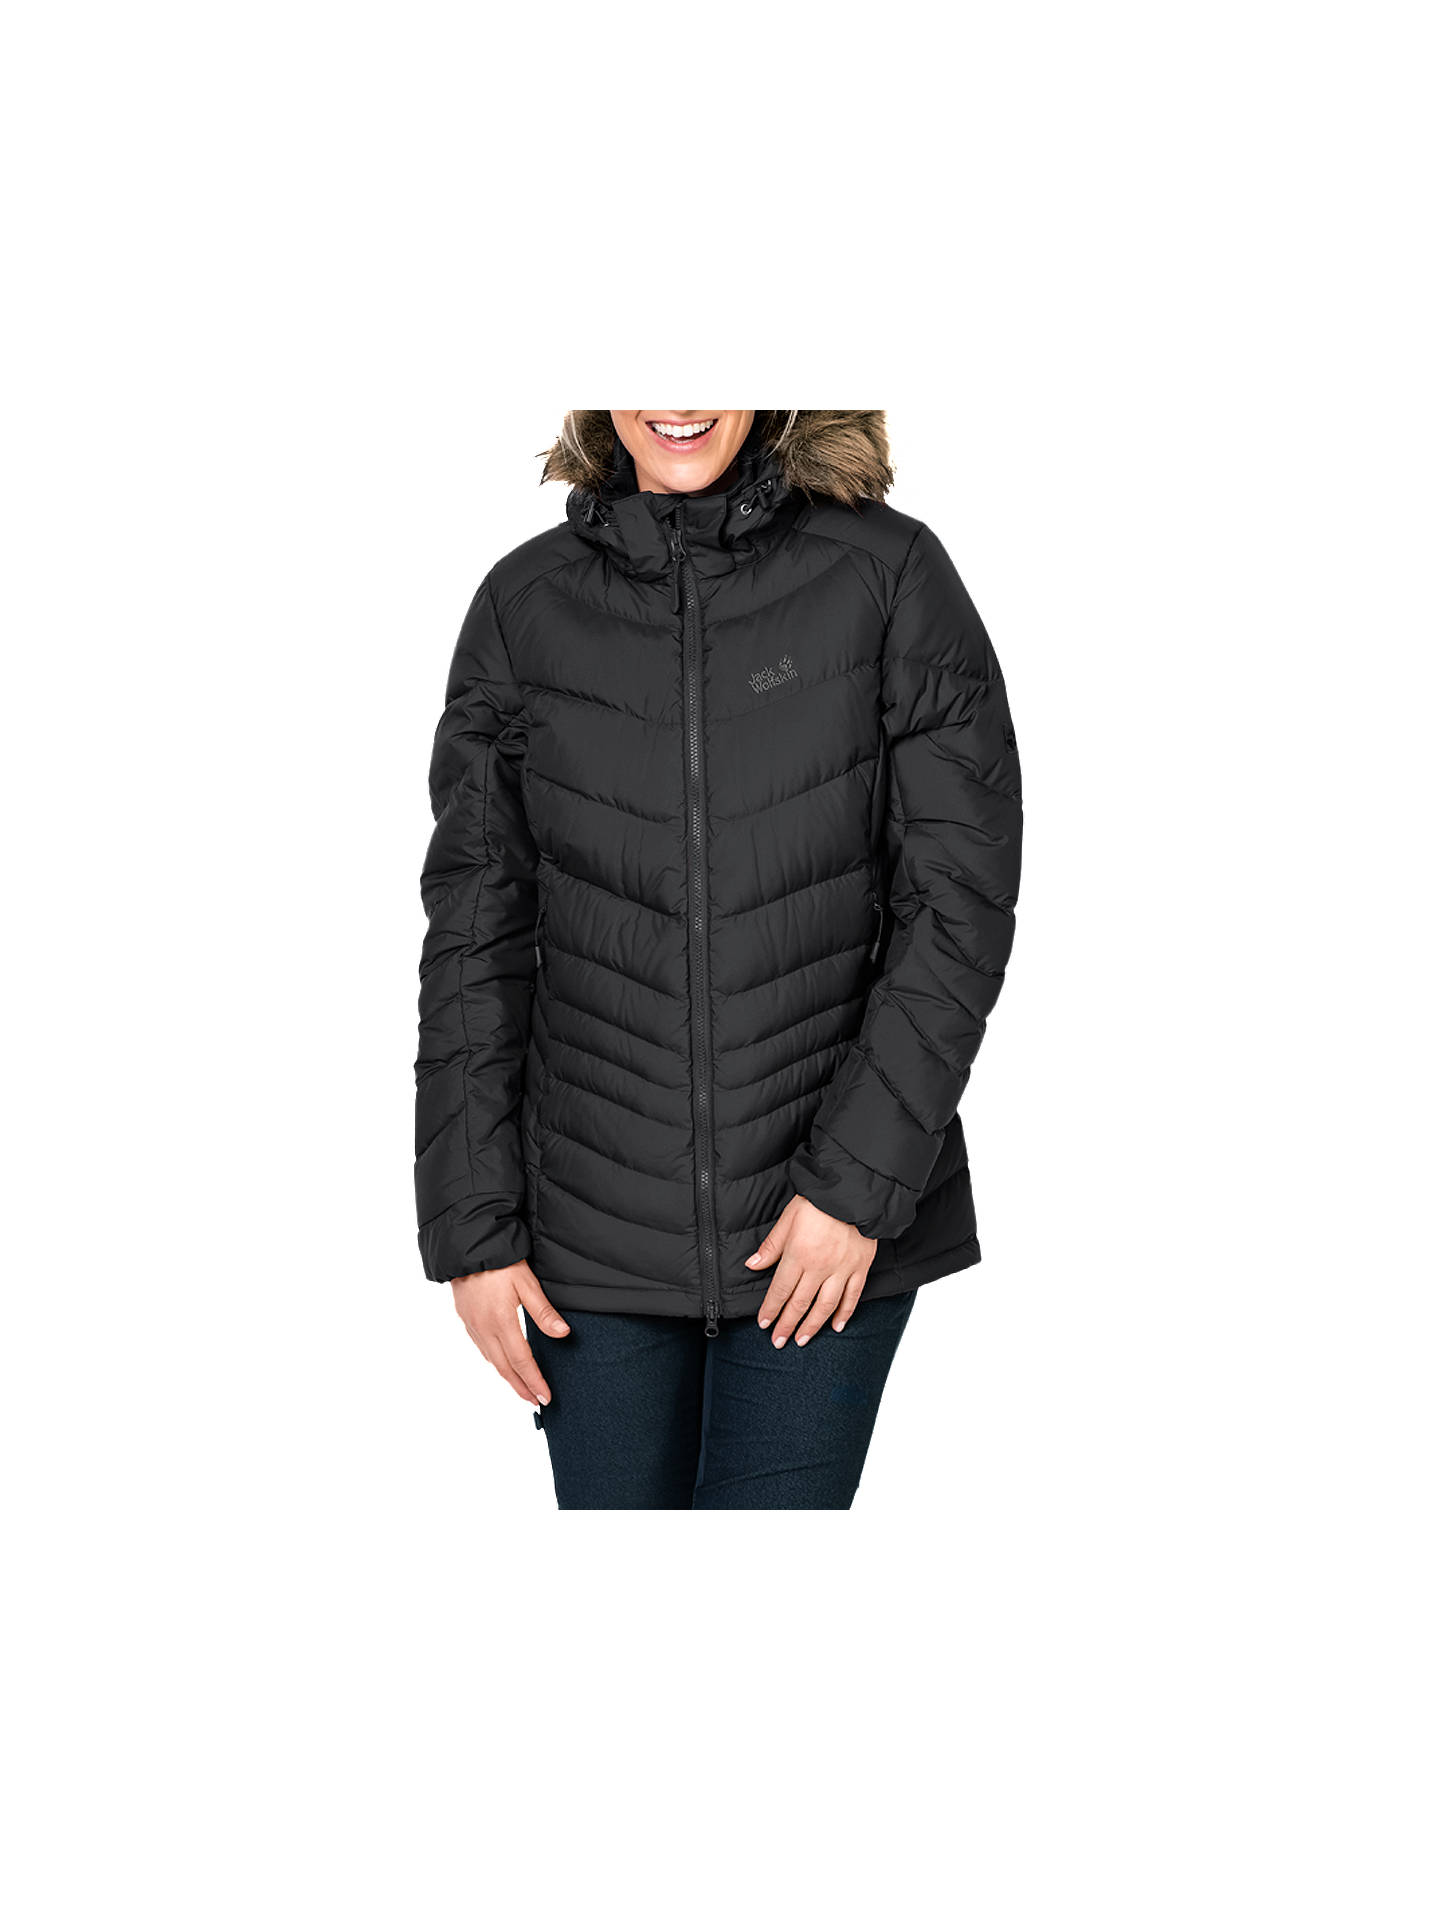 203e0f1ab3 Buy Jack Wolfskin Selenium Bay Windproof Women's Jacket, Black, XS Online  at johnlewis.